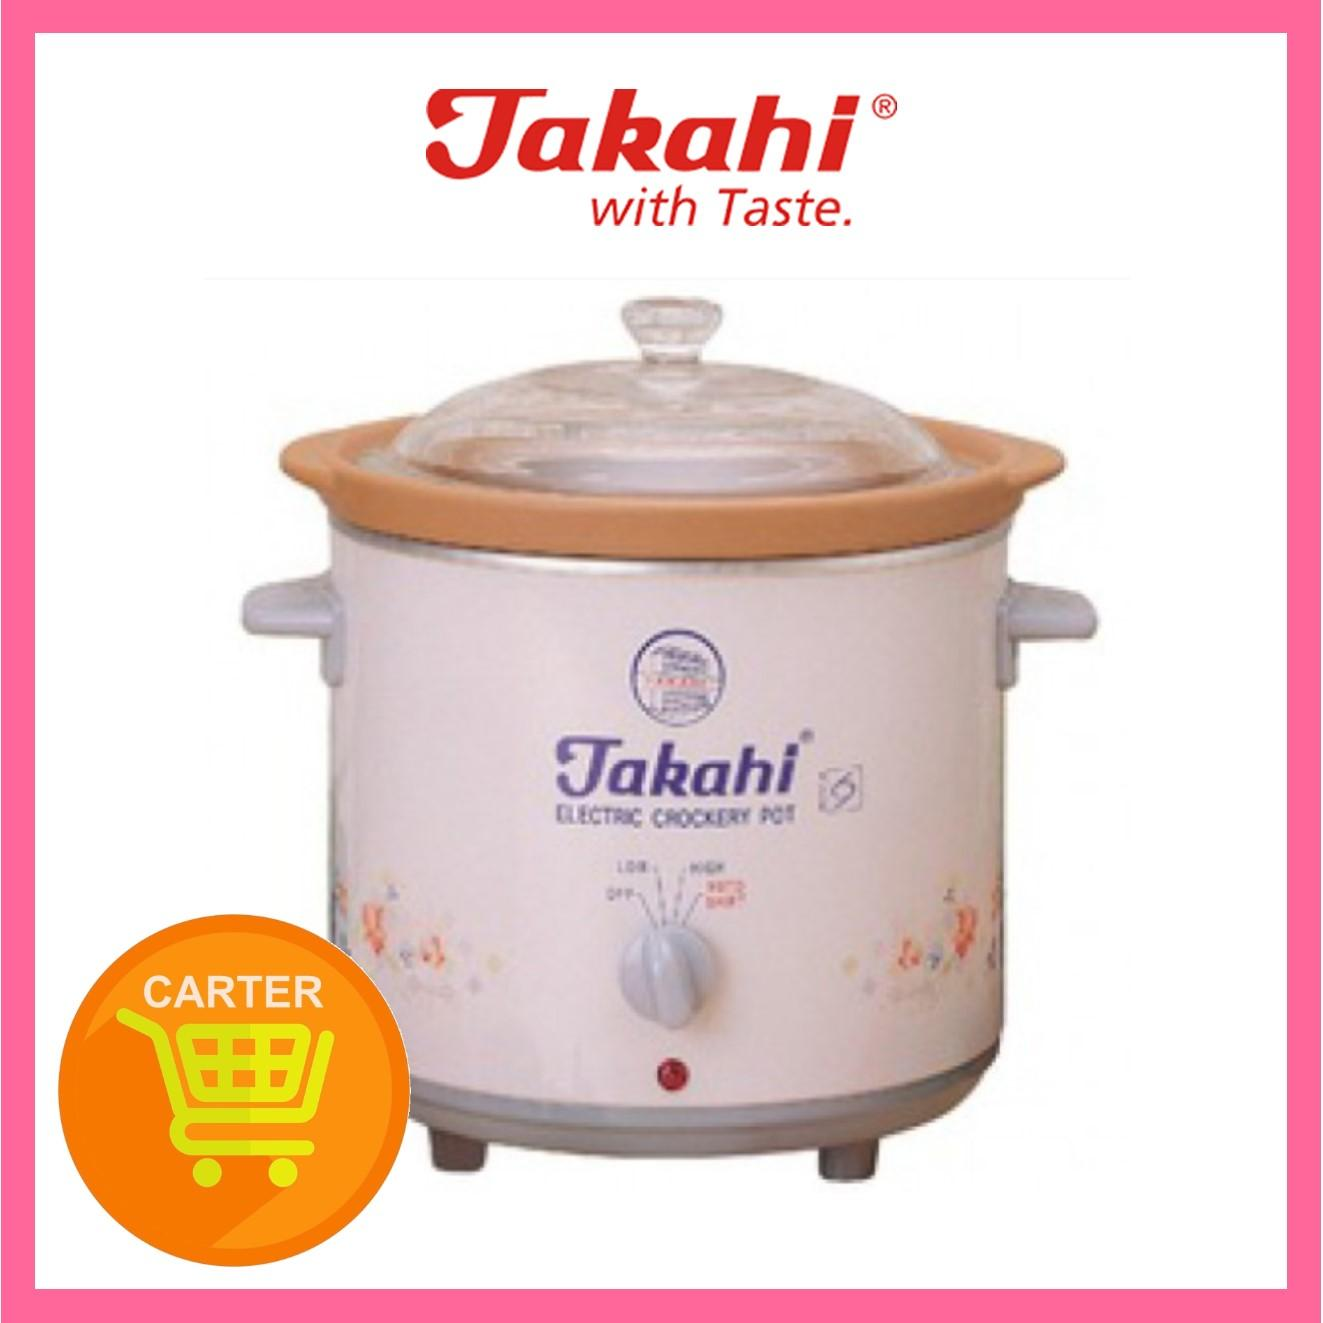 Takahi 2404 3.5L Electric Slow Cooker Heat Resistant Pot (PINK)